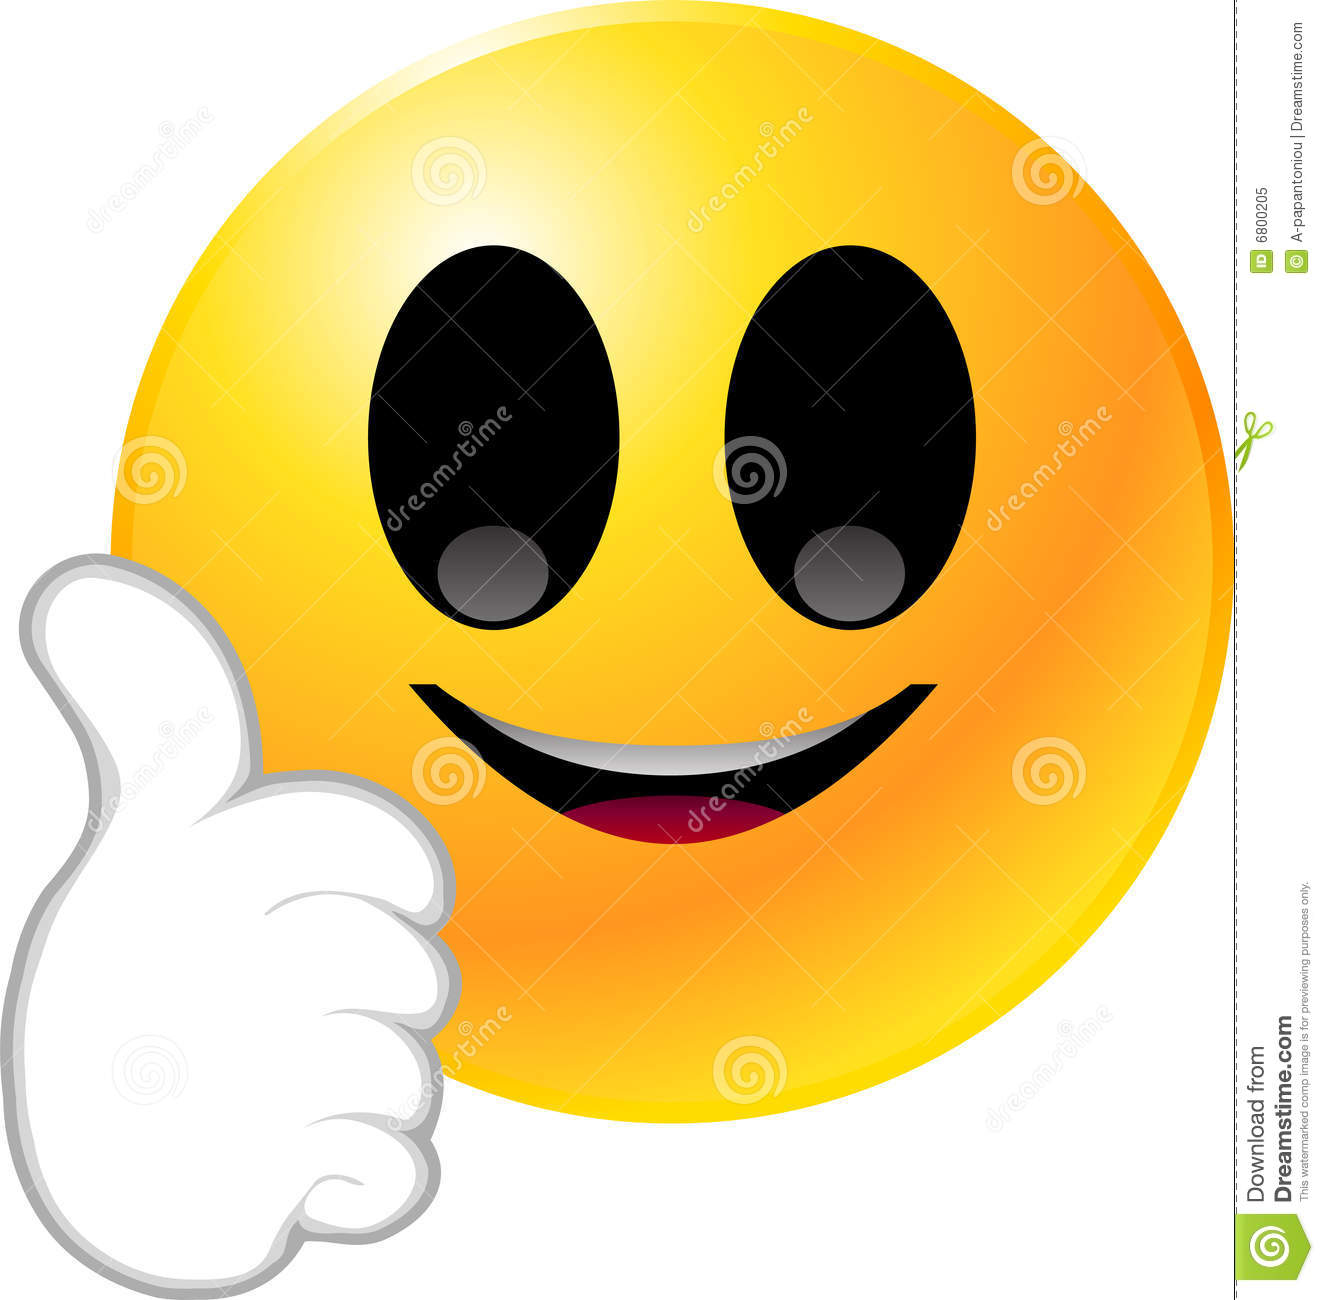 Free PNG HD Smiley Face Thumbs Up - 123395